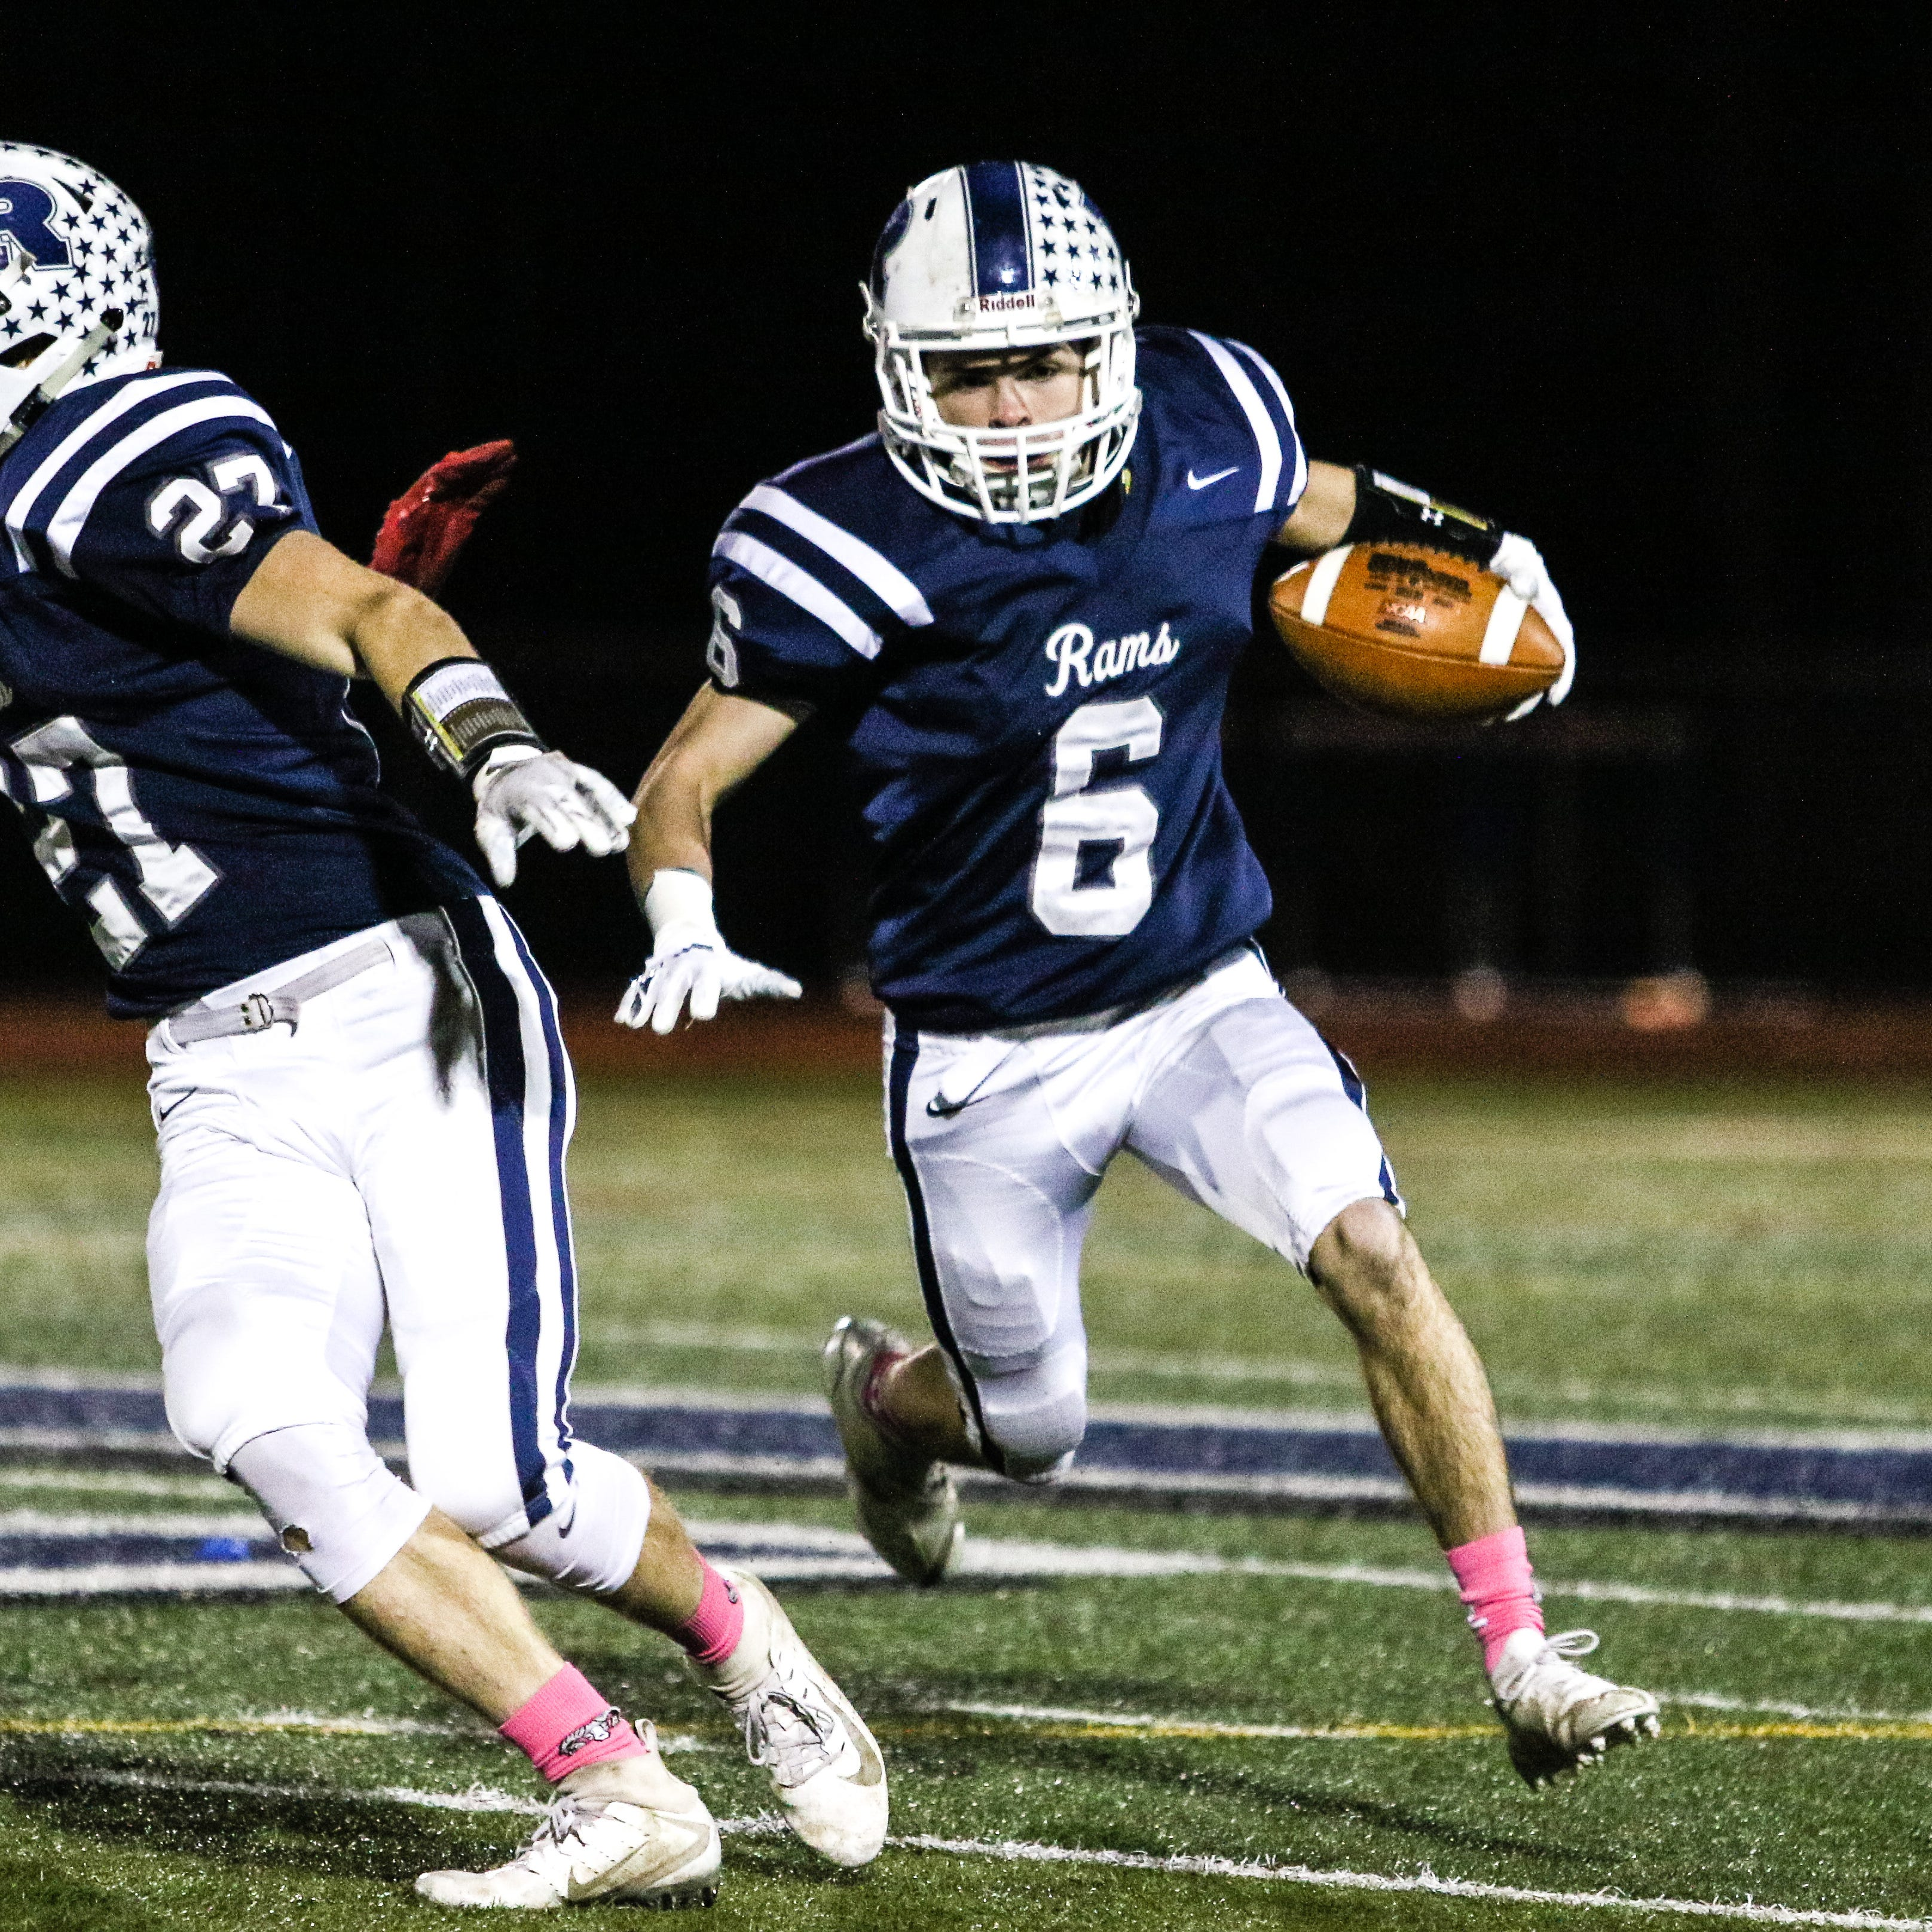 Randolph football stays undefeated with win against Morris Hills